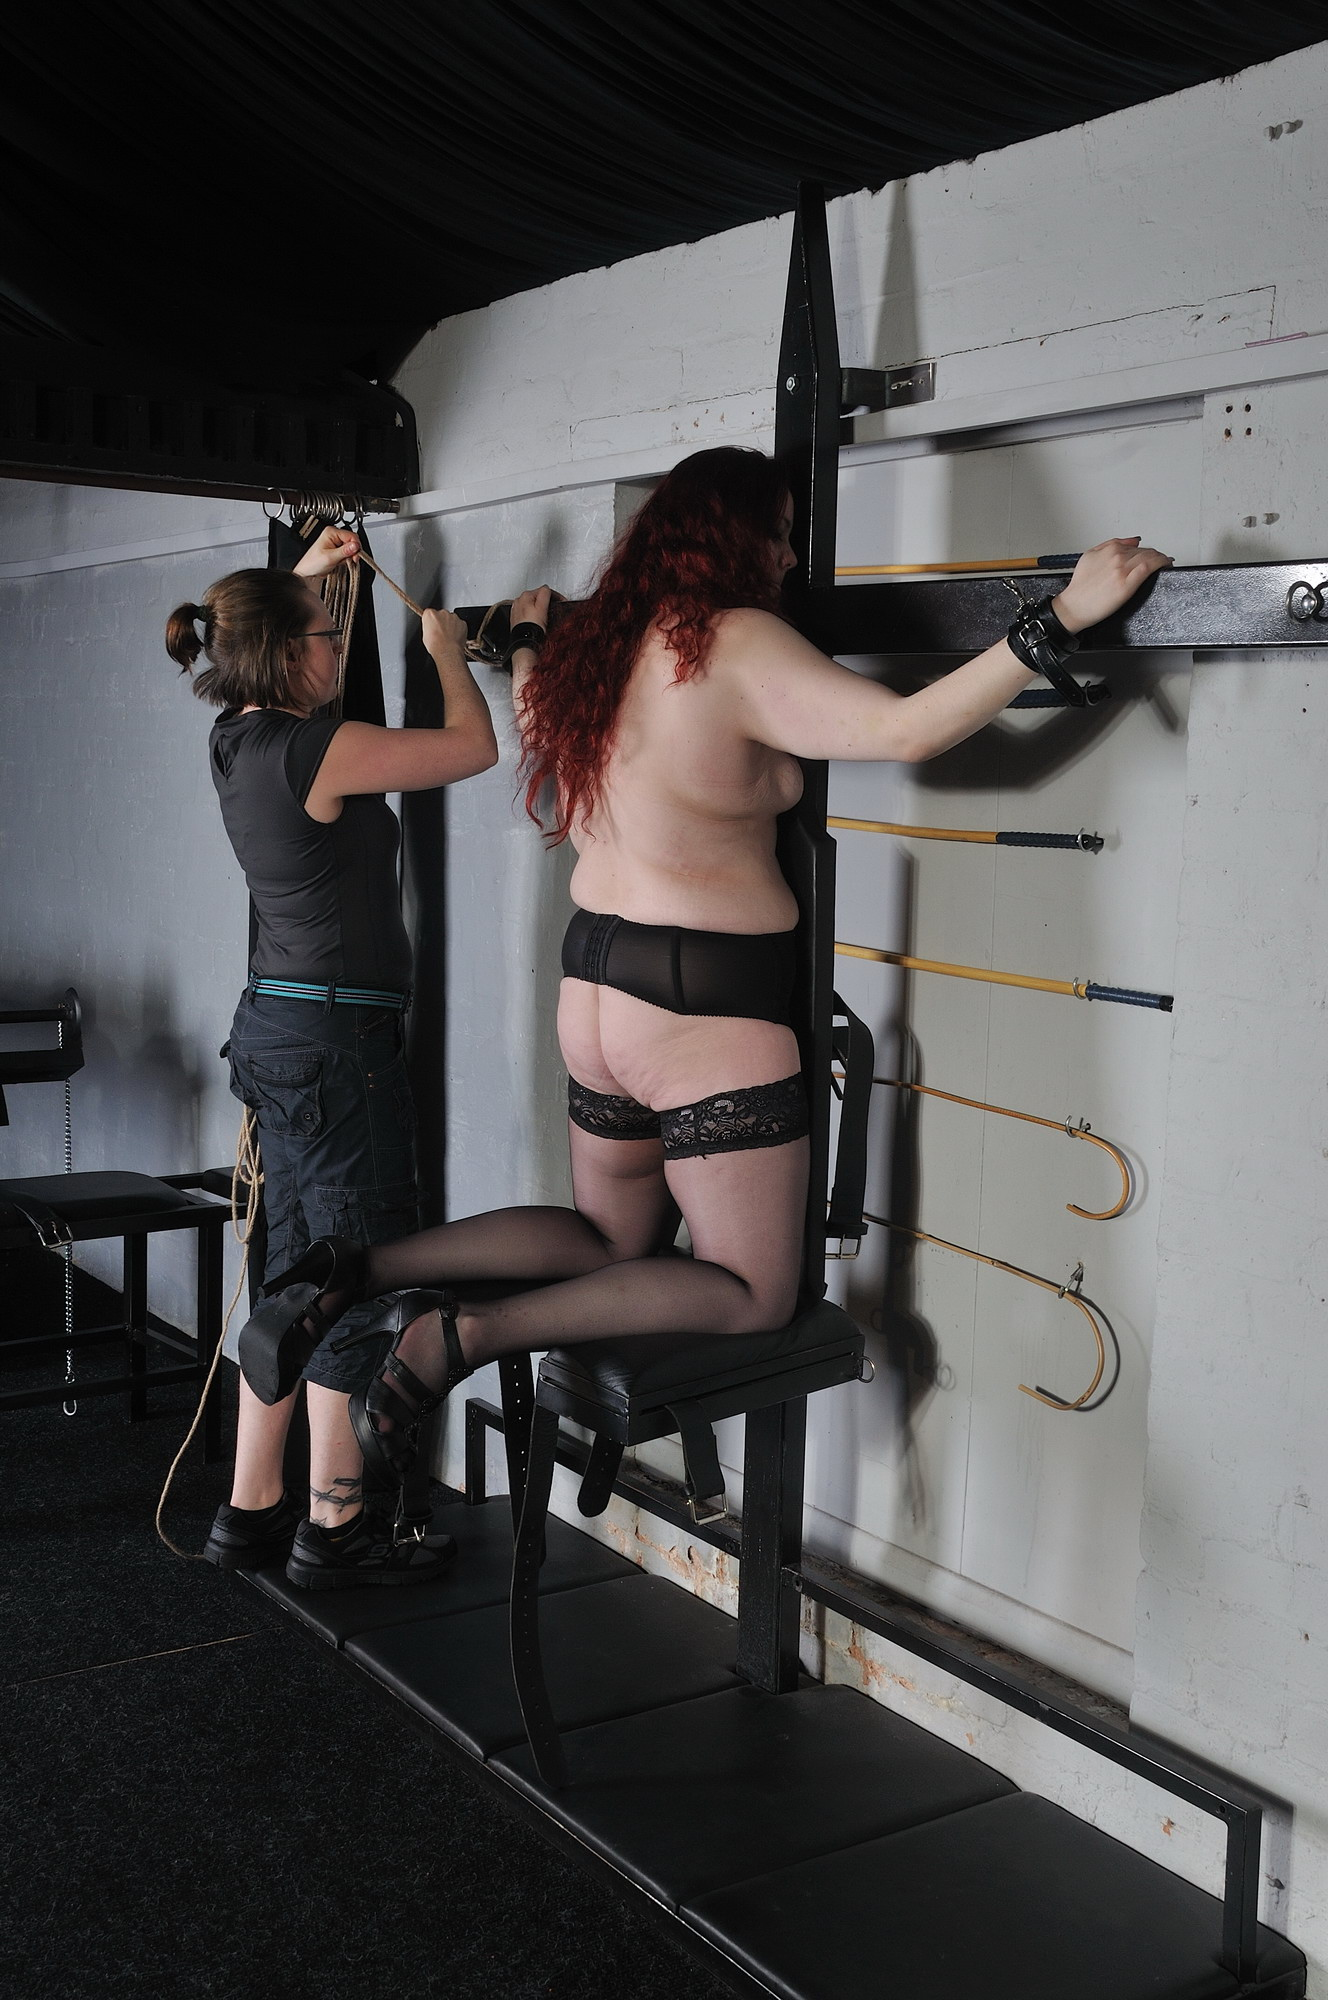 Free bdsm whipping videos want